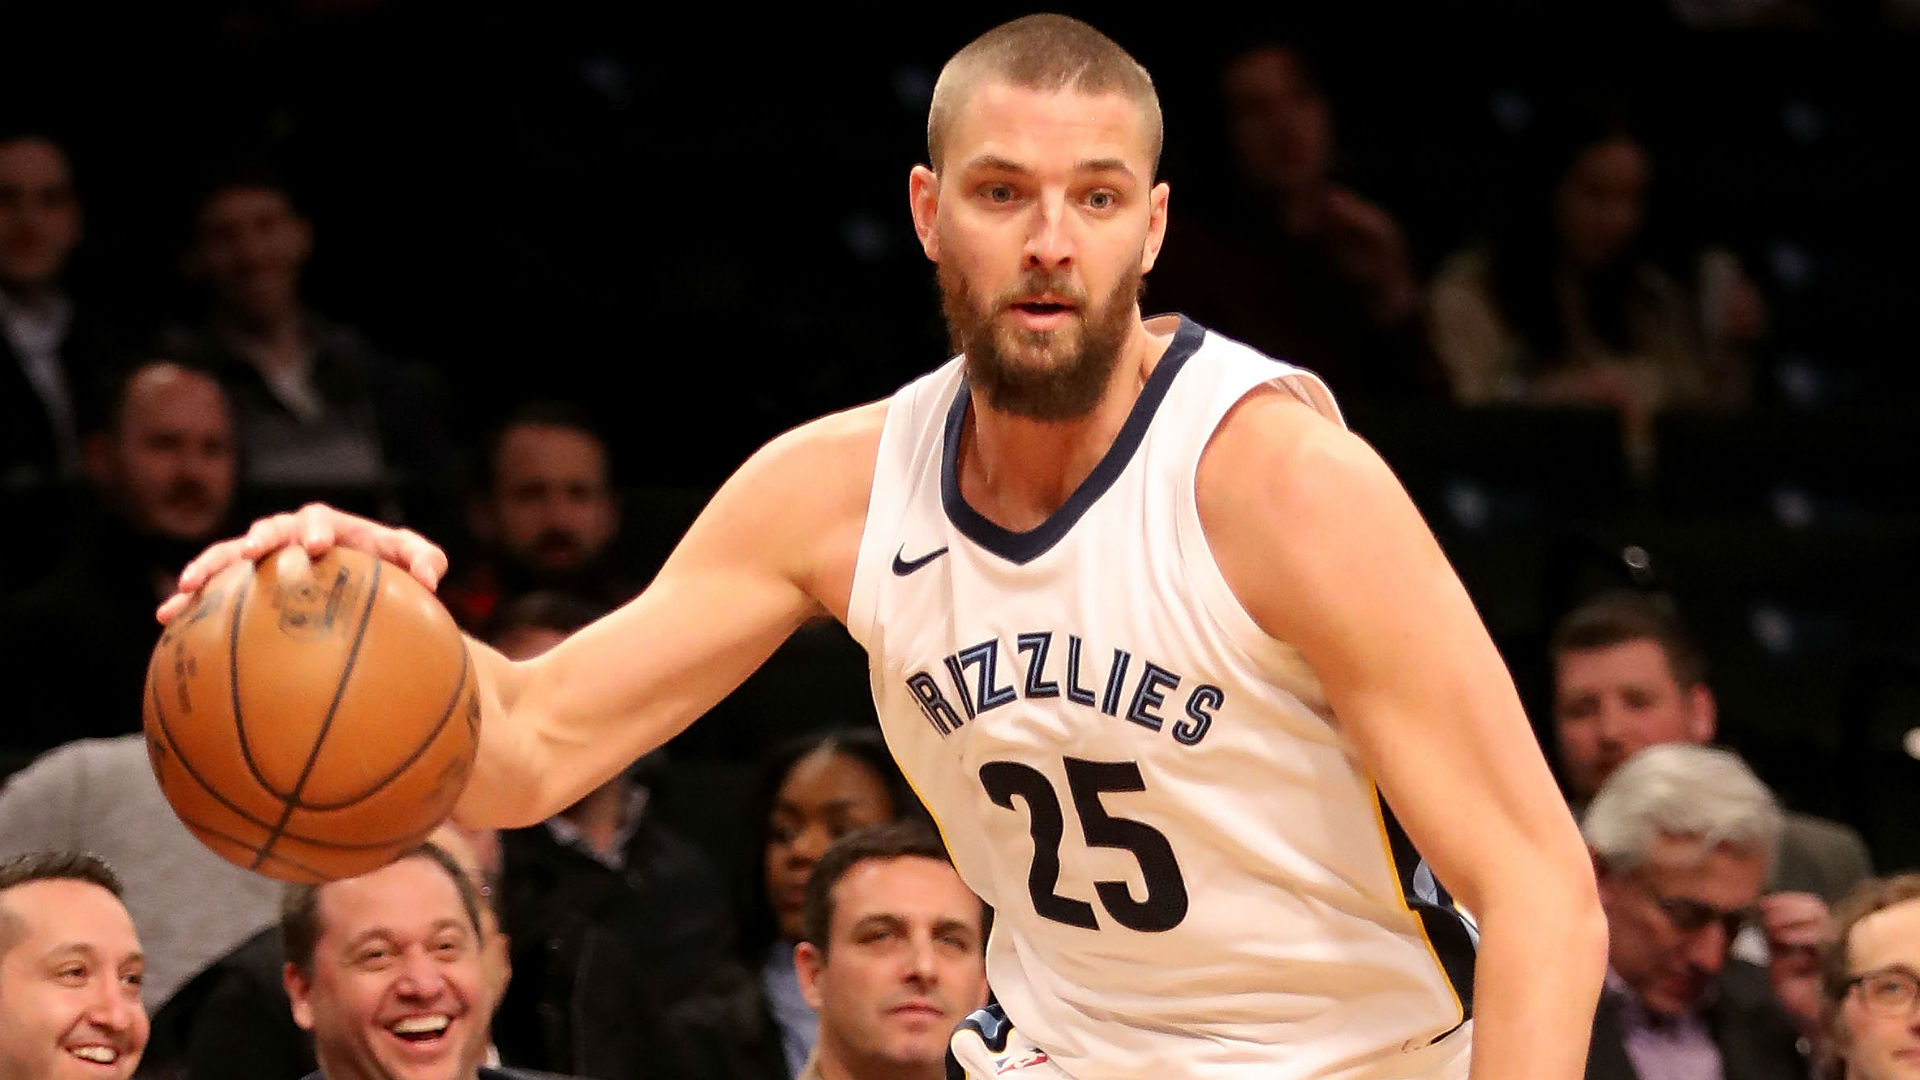 Grizzlies, Chandler Parsons agree to part ways, report says